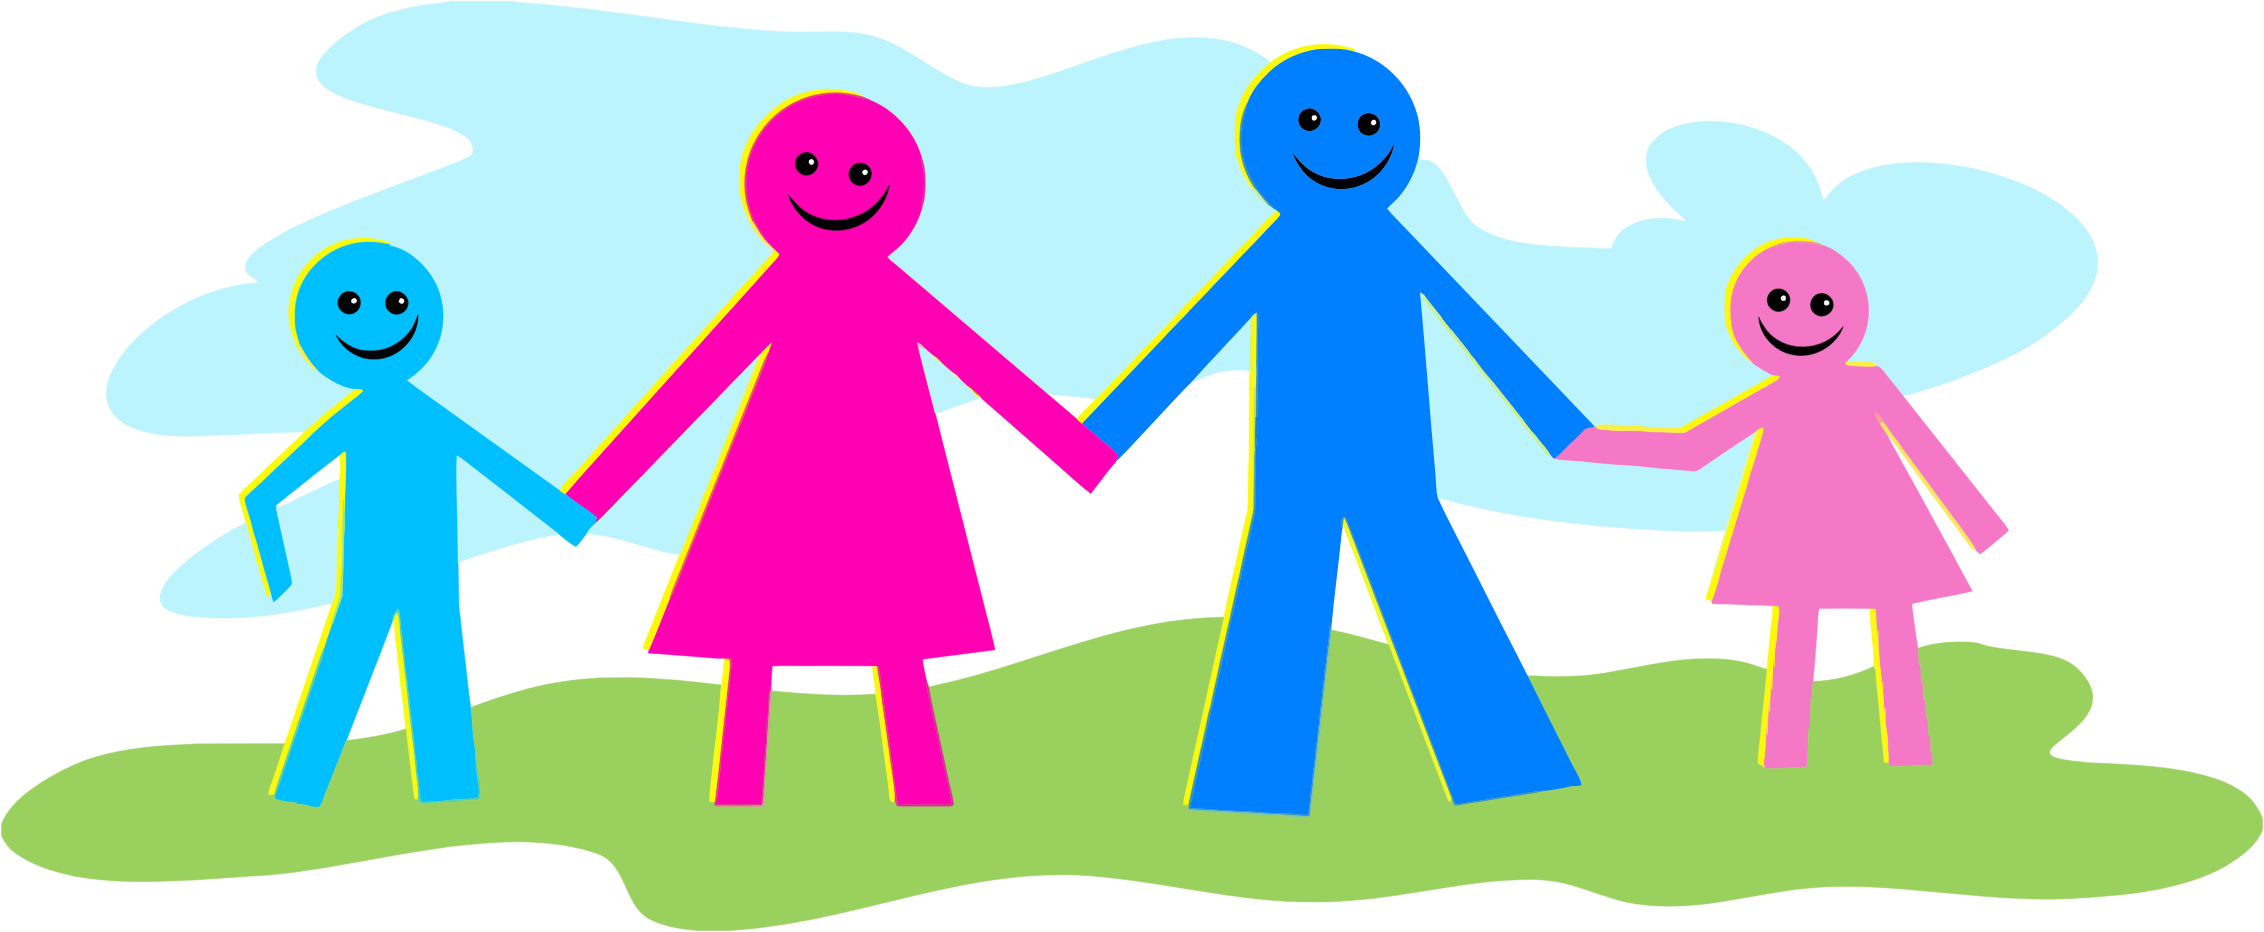 Big image png. Clipart family stick figure